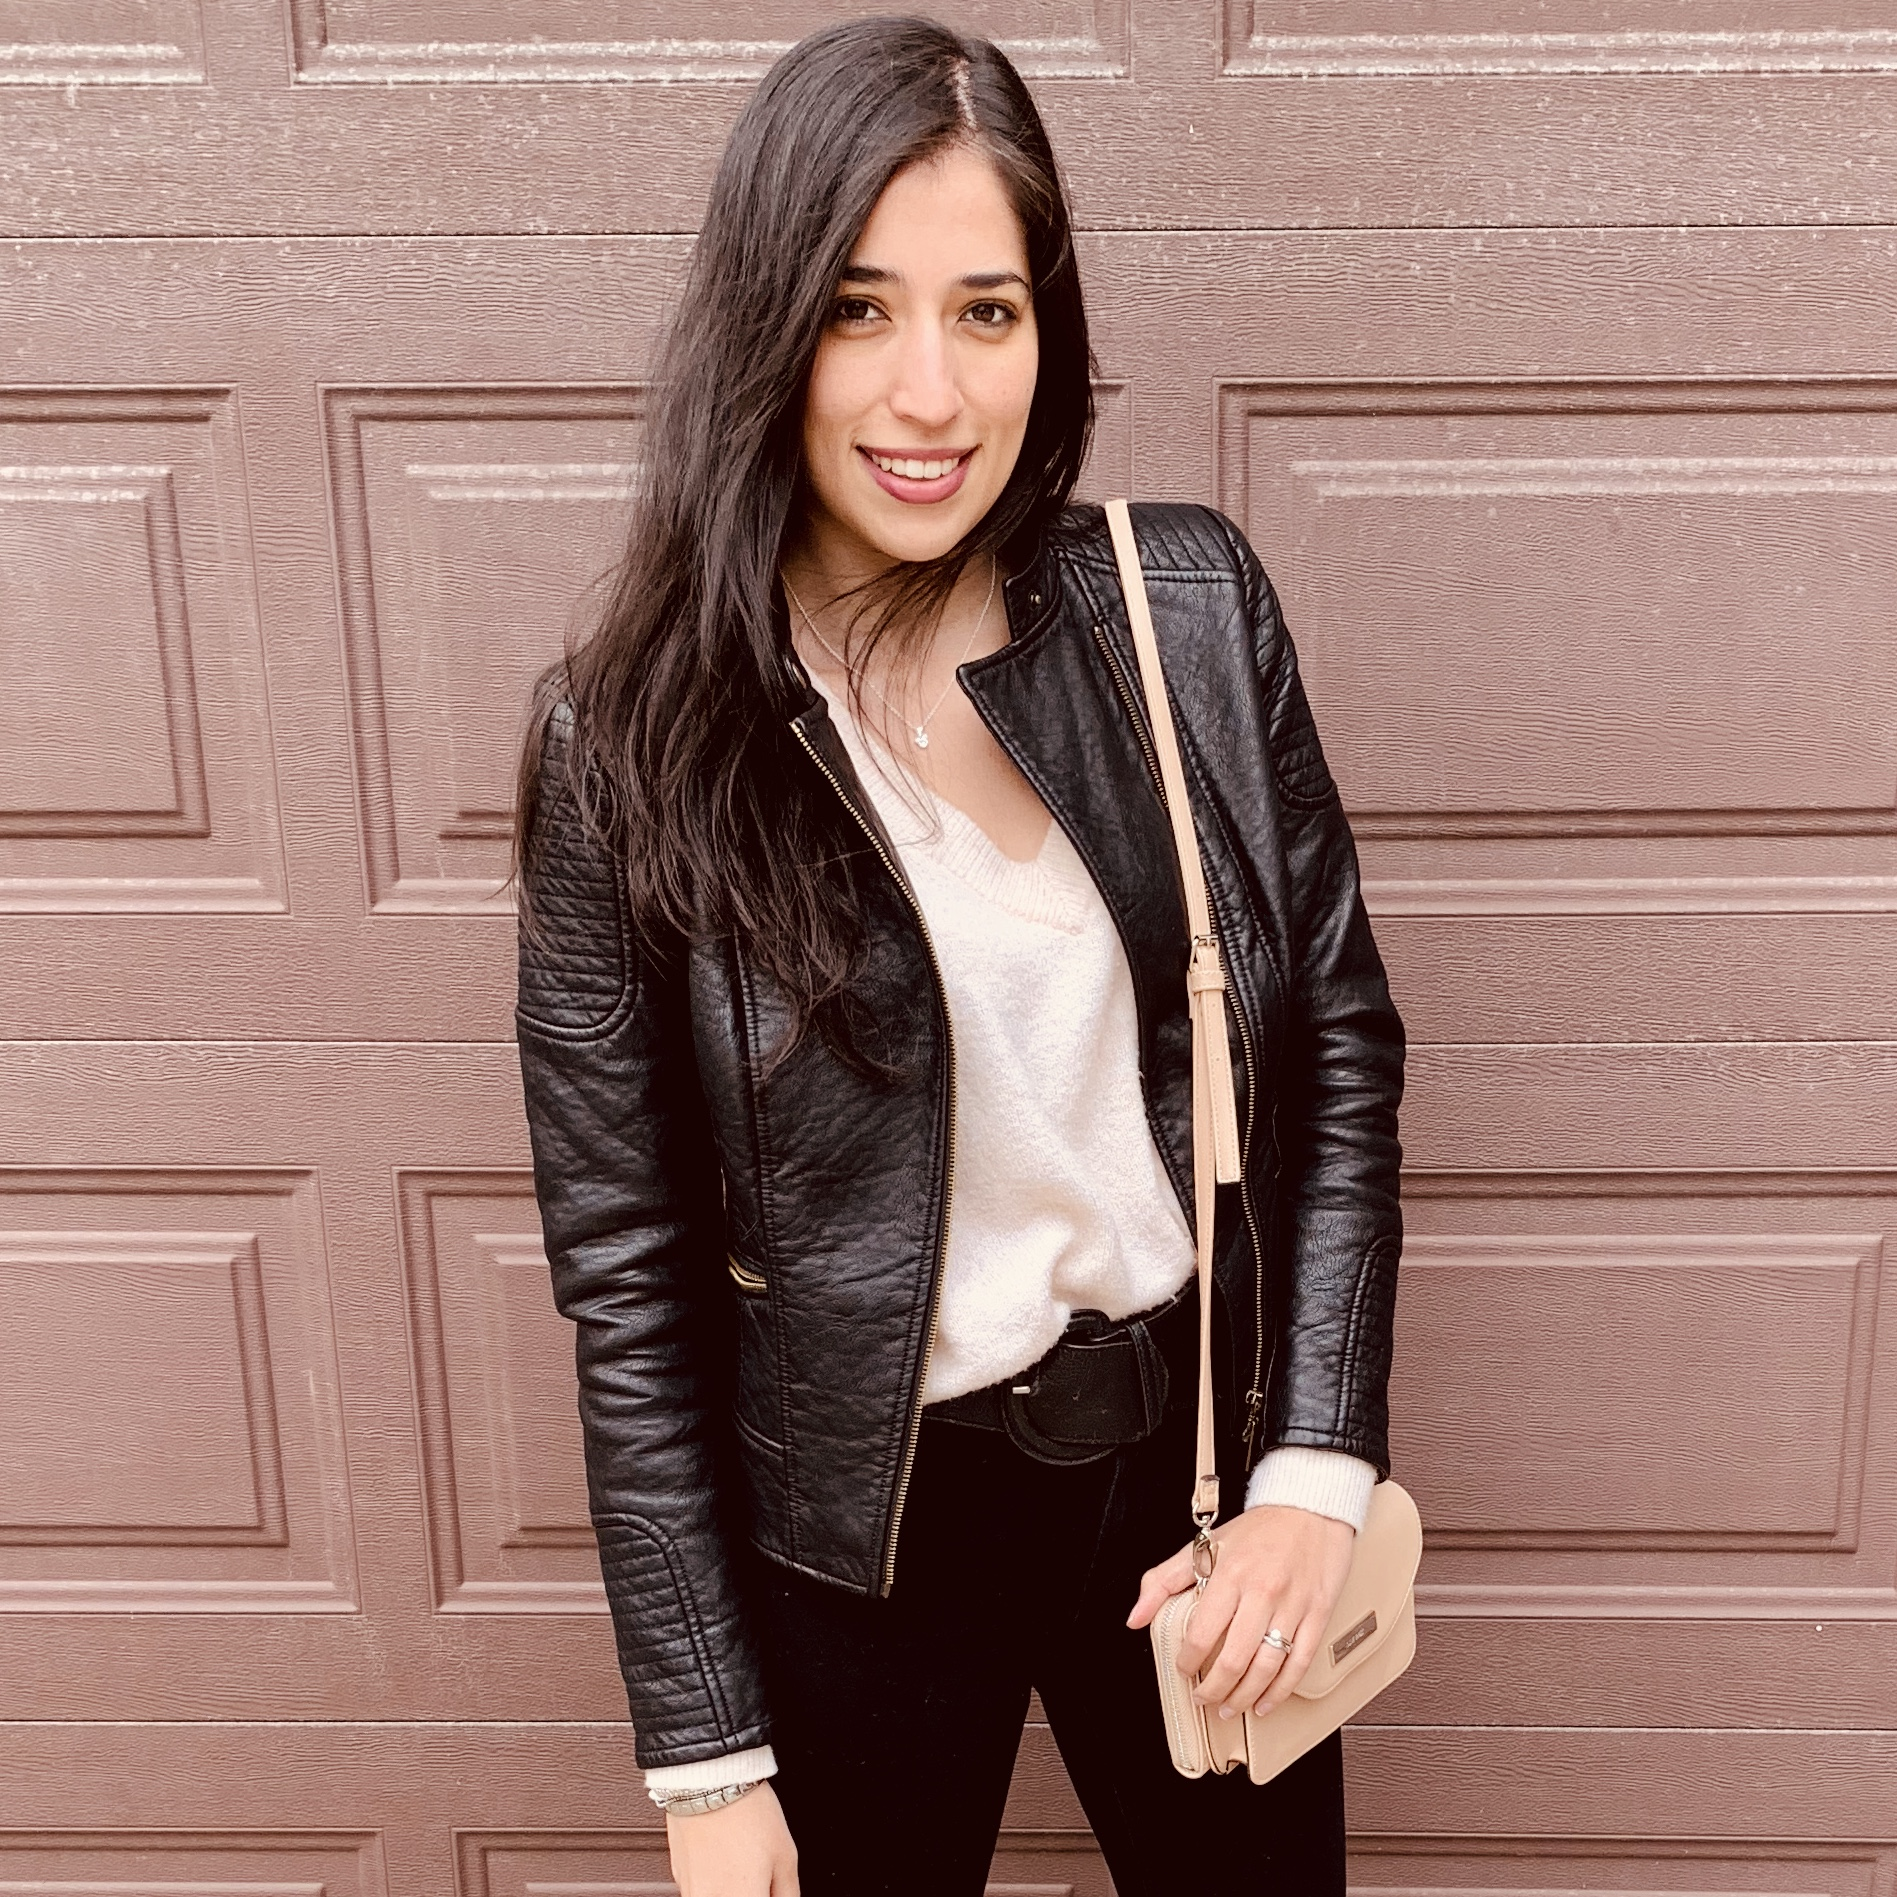 marmag creation - Ethical fashion blogger traveling more and rewearing my closet.Based in: USA